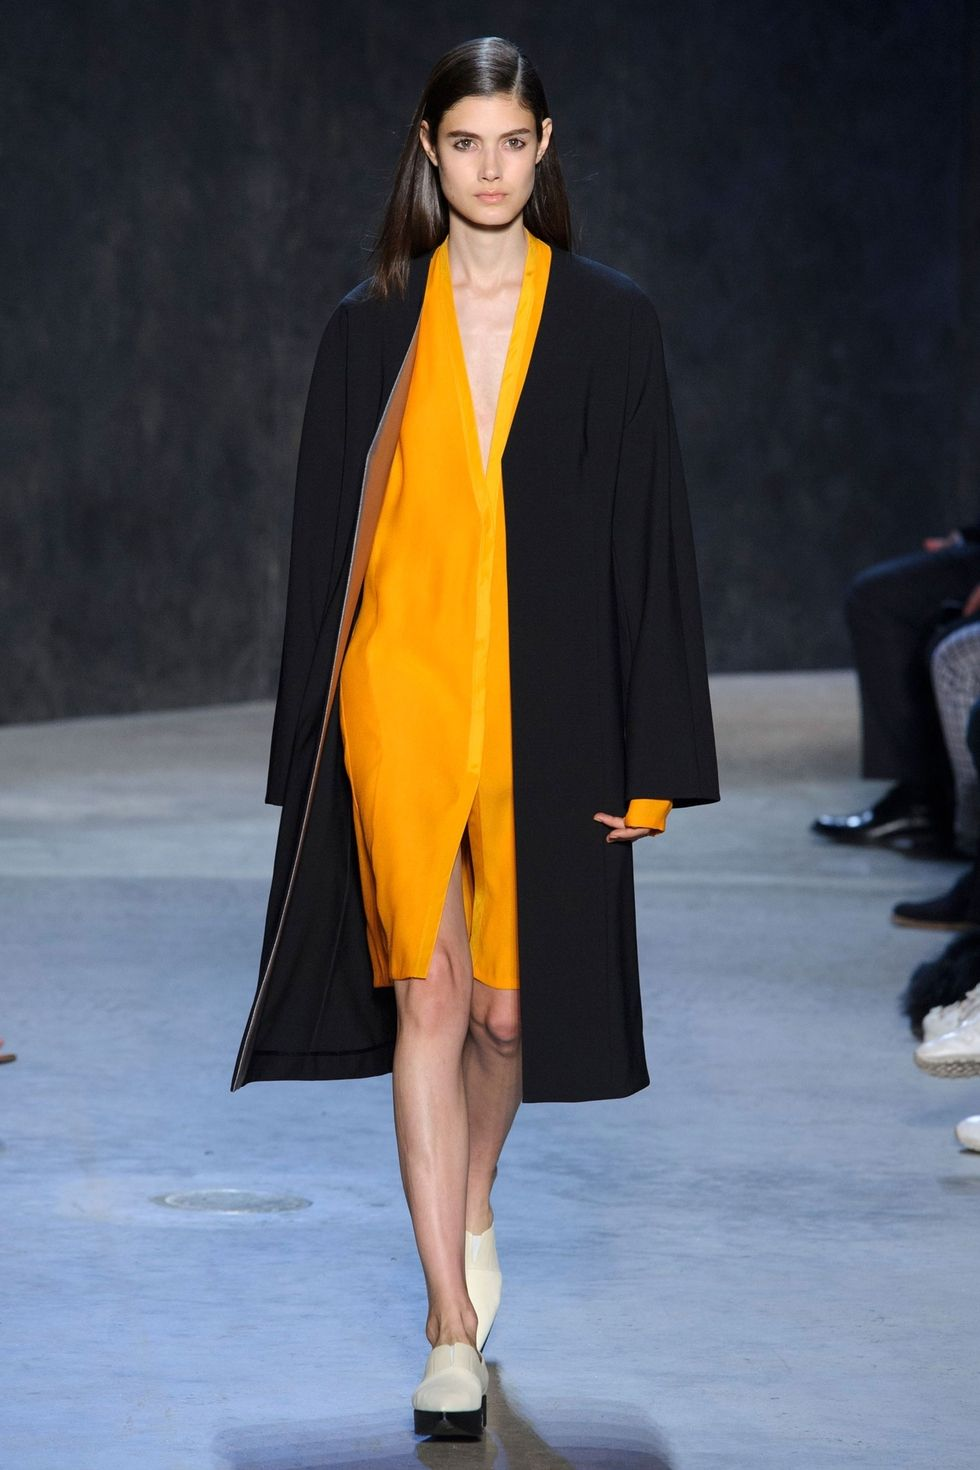 hbz-nyfw-ss16-best-looks-narciso-rodriguez-08-imaxtree